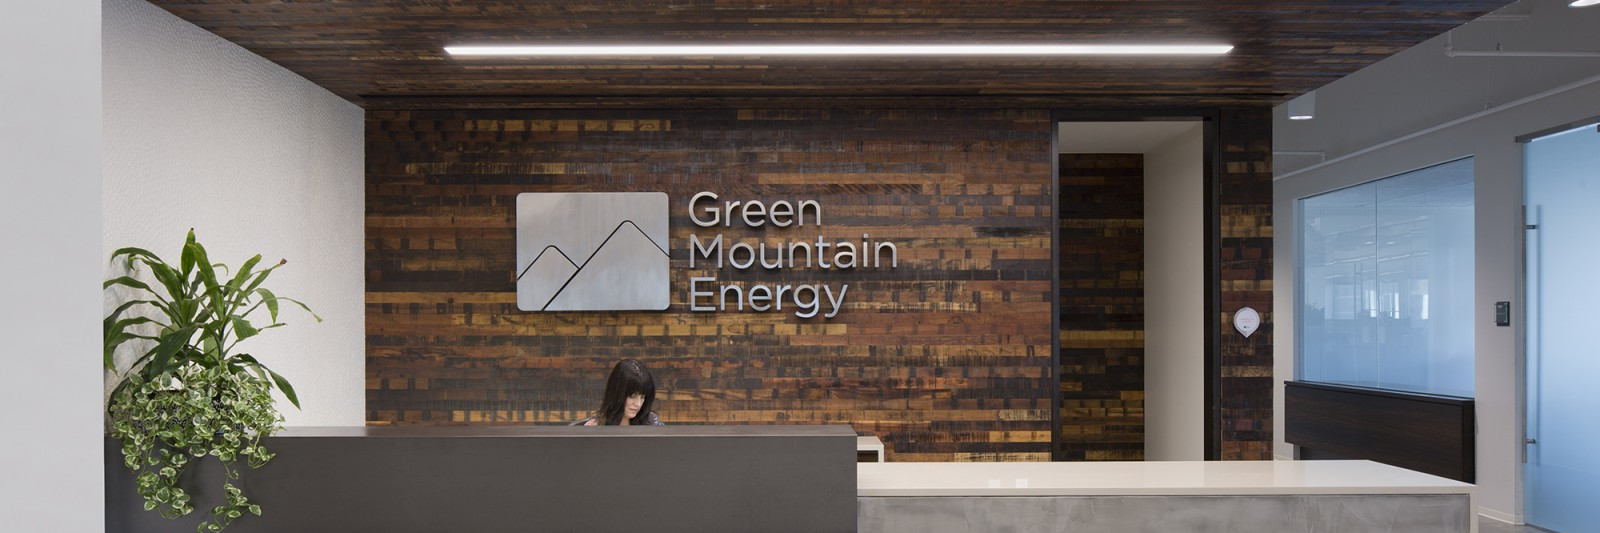 Green Mountain Energy Corporate Headquarters  The Beck Group. Top Computer Engineering Schools. Capital Works Private Equity. Fire Department Dispatch Wordpress Web Design. Case Management Education Diy Debt Settlement. Guaranteed Bank Accounts Mcdonalds Pos System. Computer Courses In Usa Jeep Chrysler Dealers. Hybrid Electric Cars 2014 Mazda 6 Vs Mazda 3. Water Proofing Contractors Cheap Hosting Usa